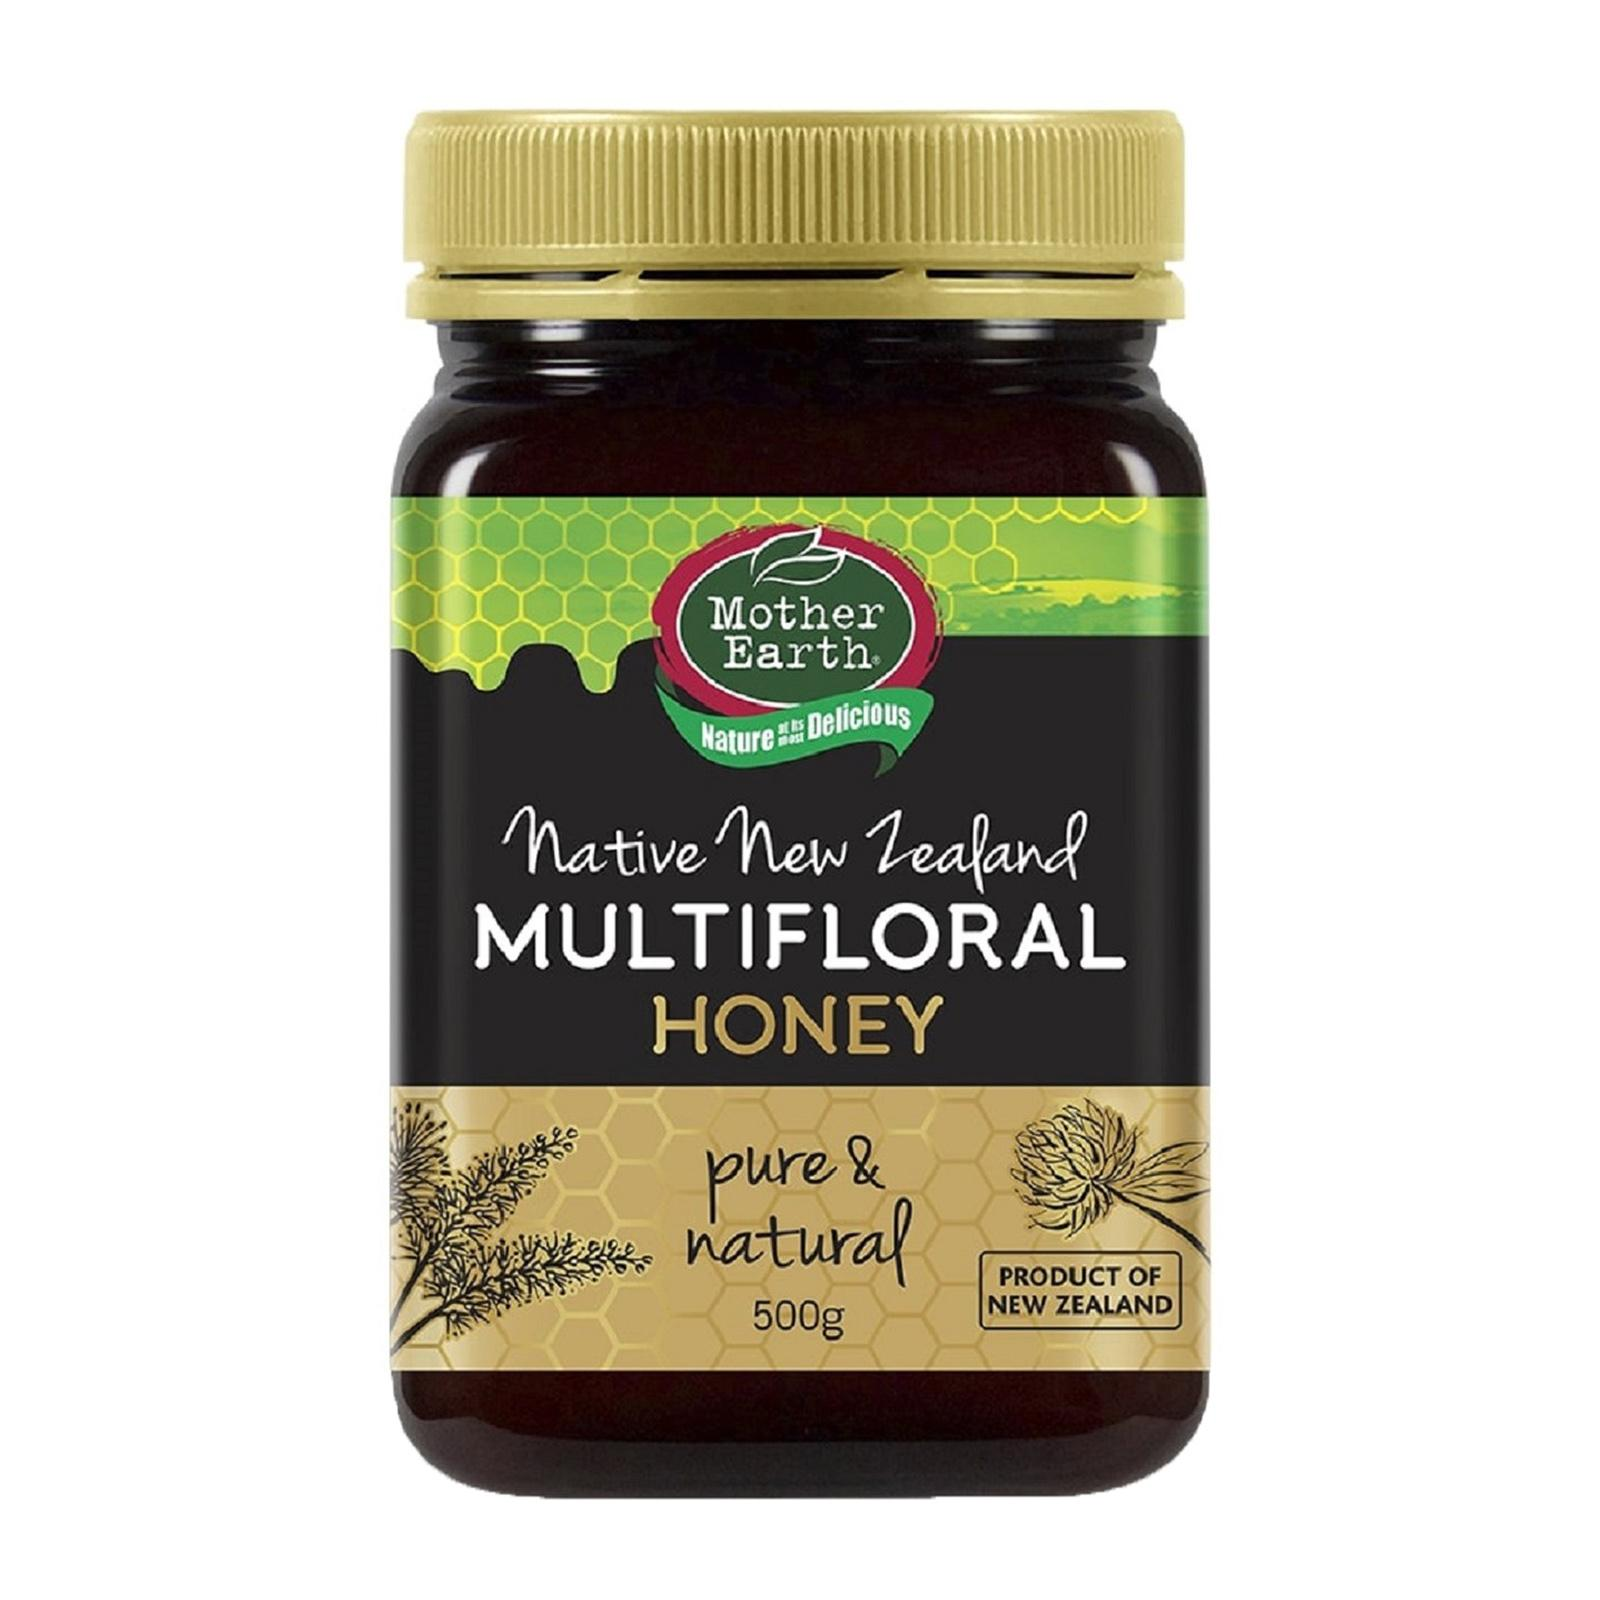 Mother Earth Multifloral Honey - by Optimo Foods